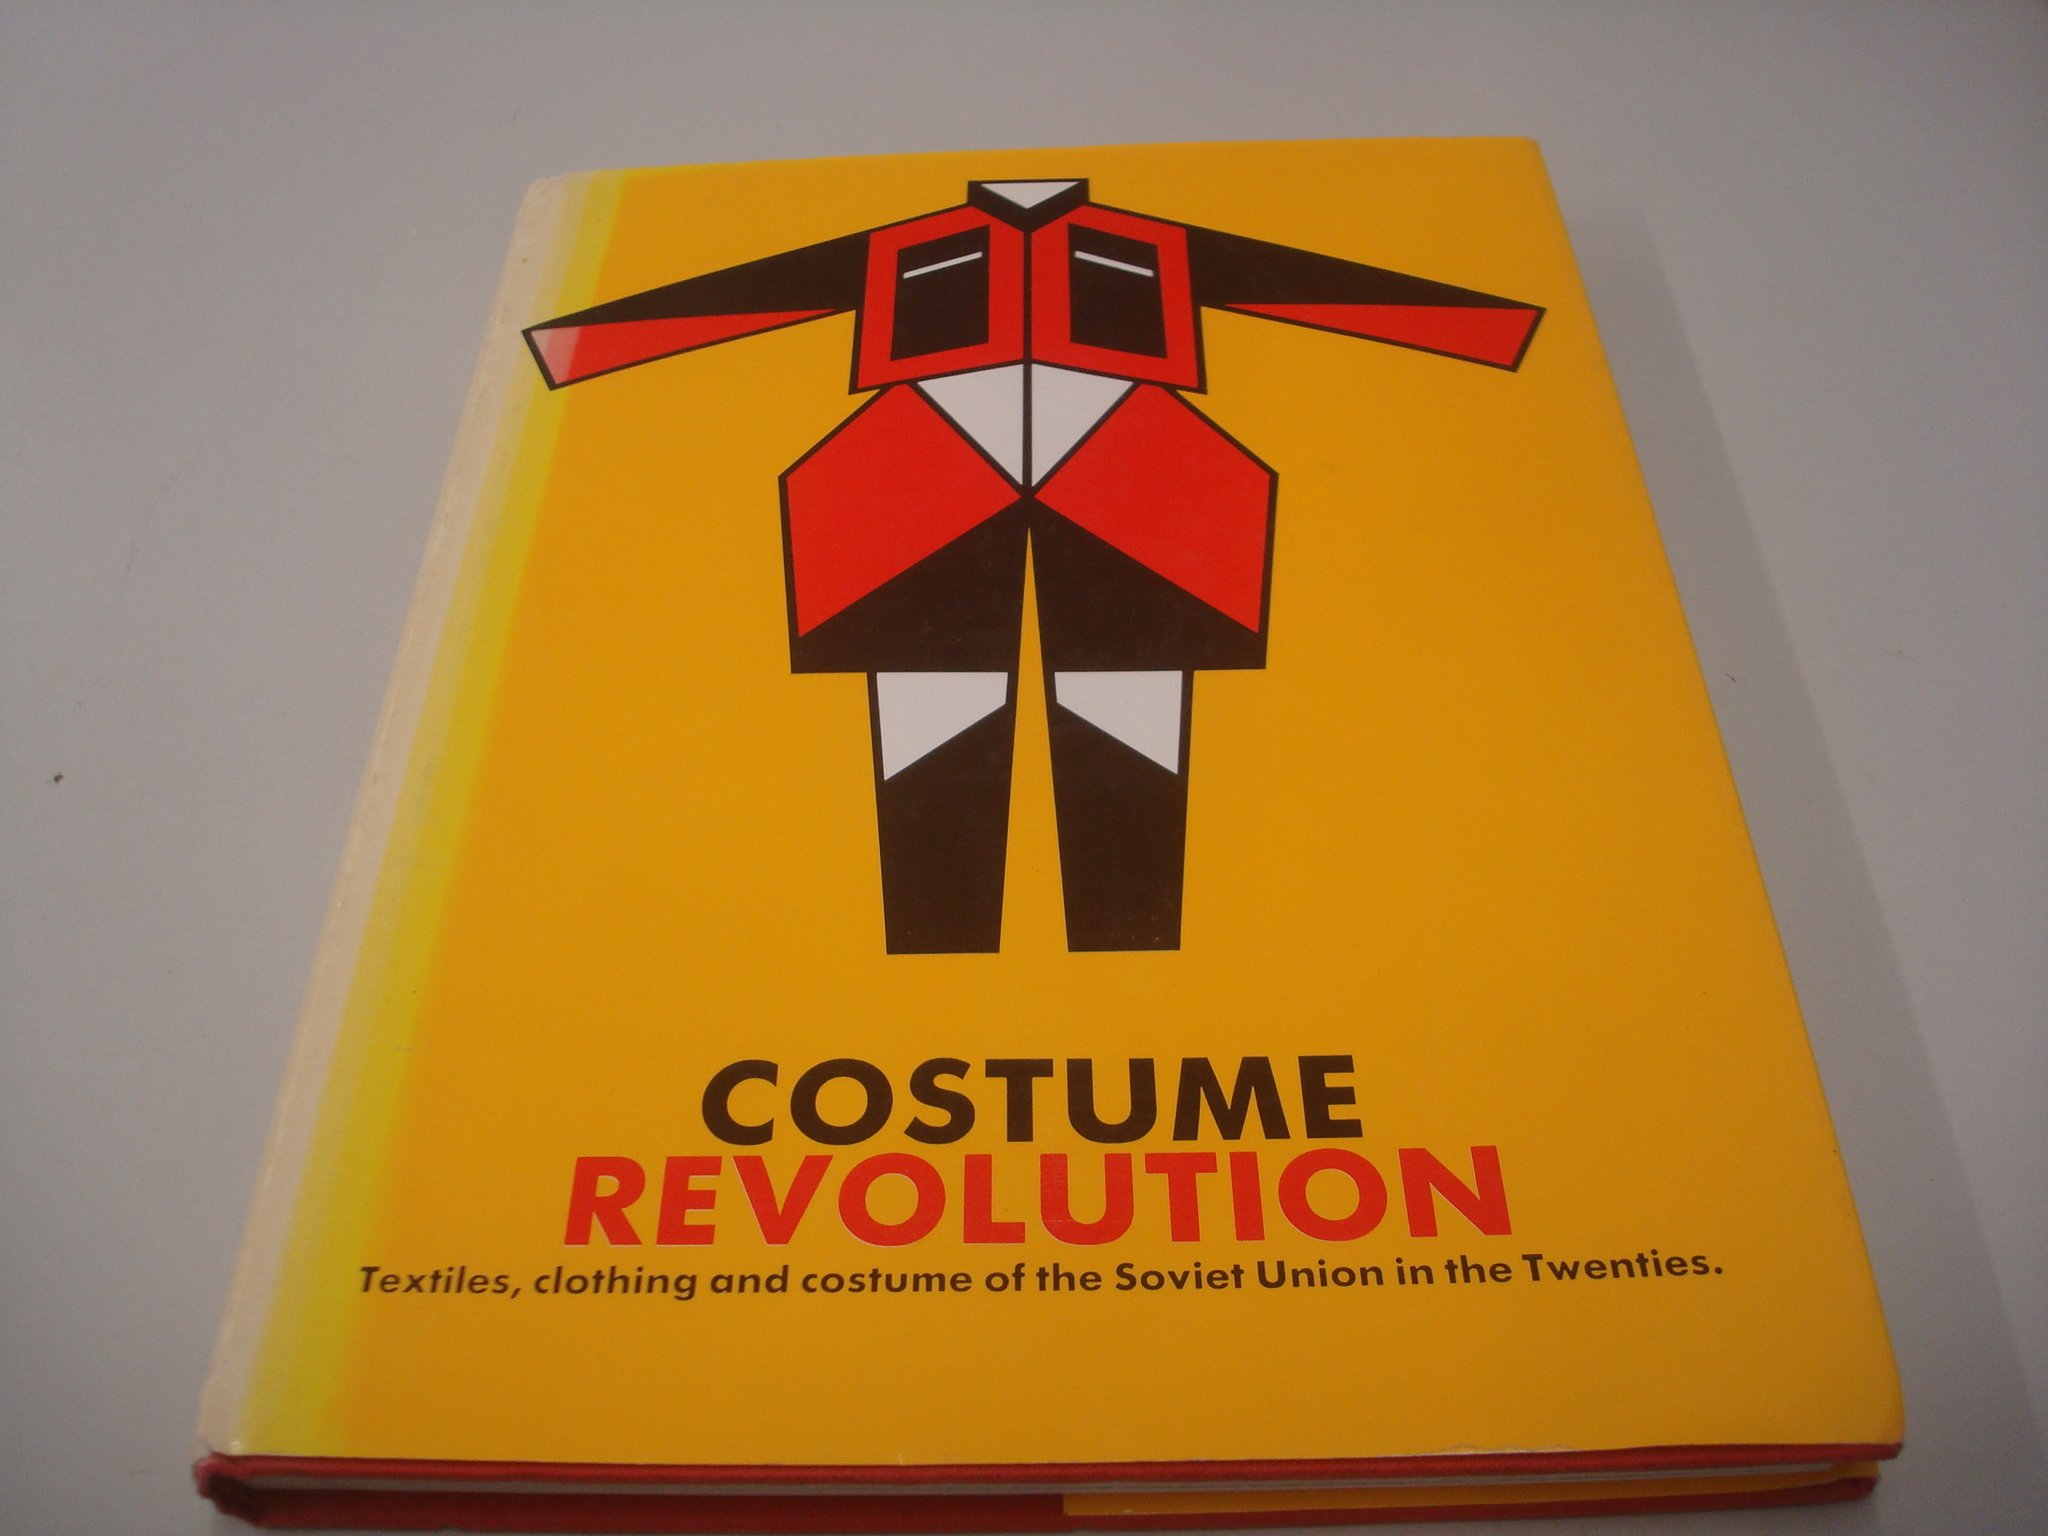 Costume Revolution: Textiles, Clothing and Costume of the Soviet